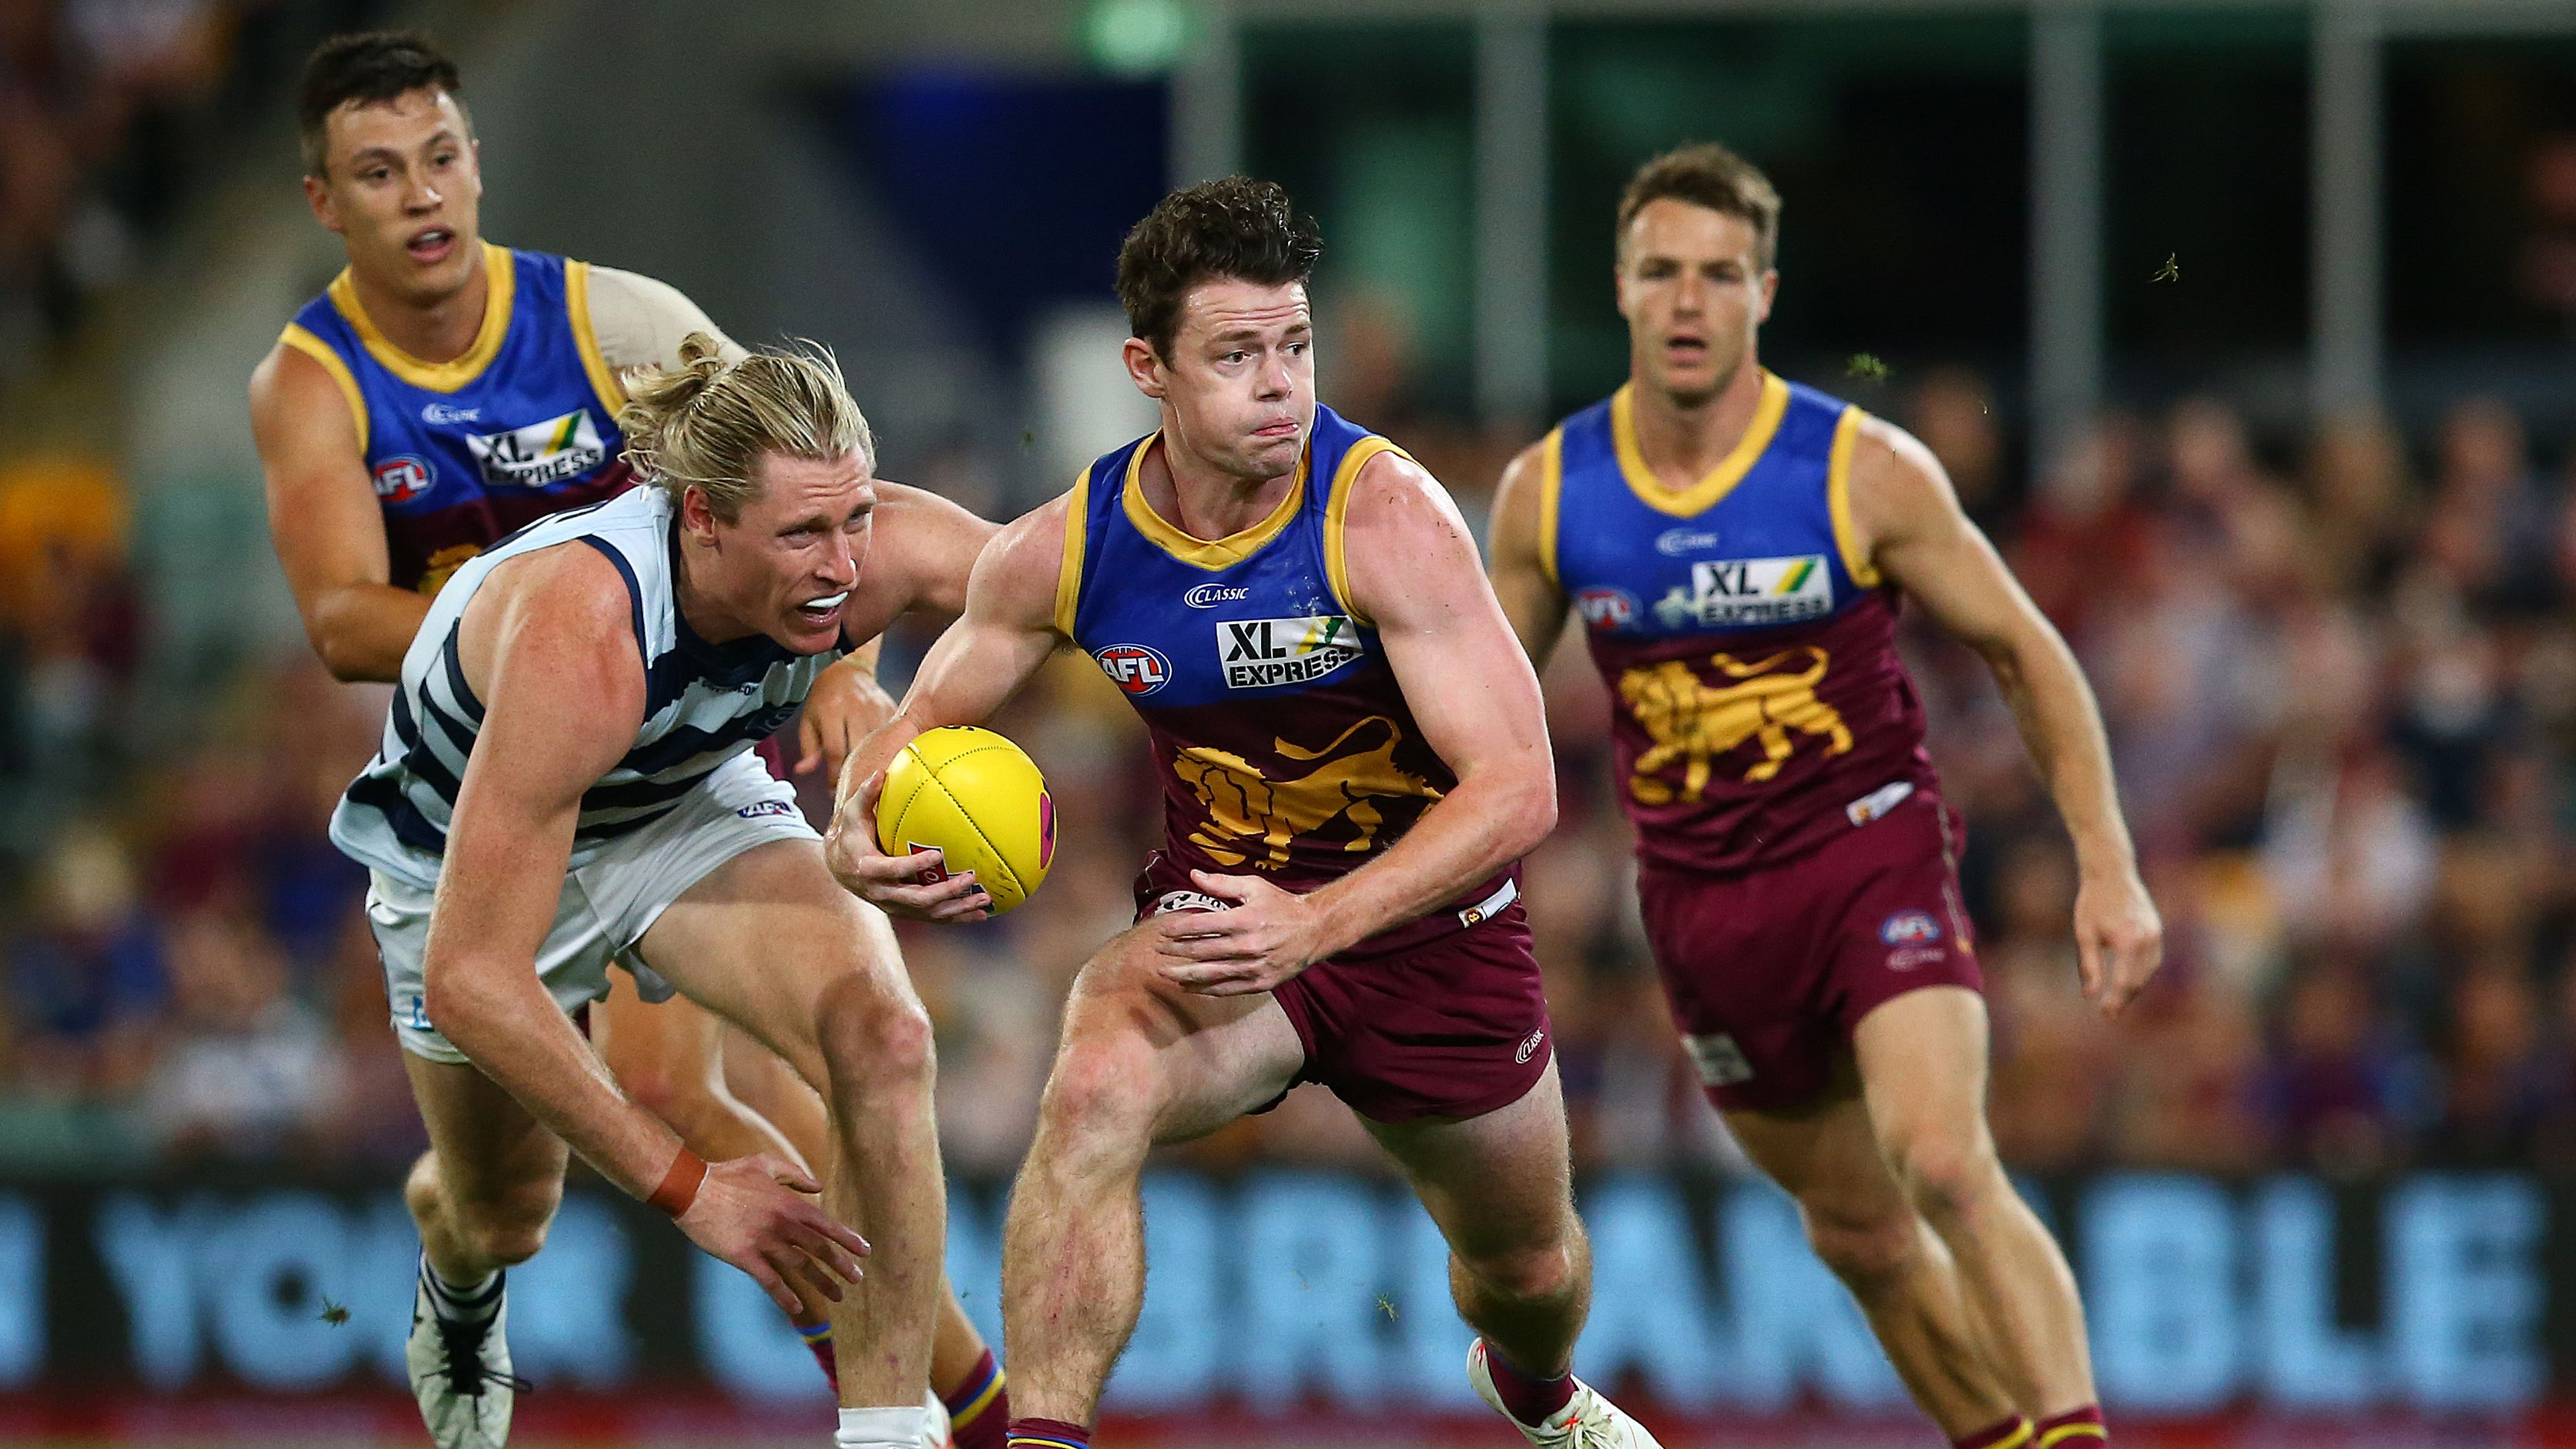 Mouthwatering preliminary-final rematches headline release of 2021 AFL fixture